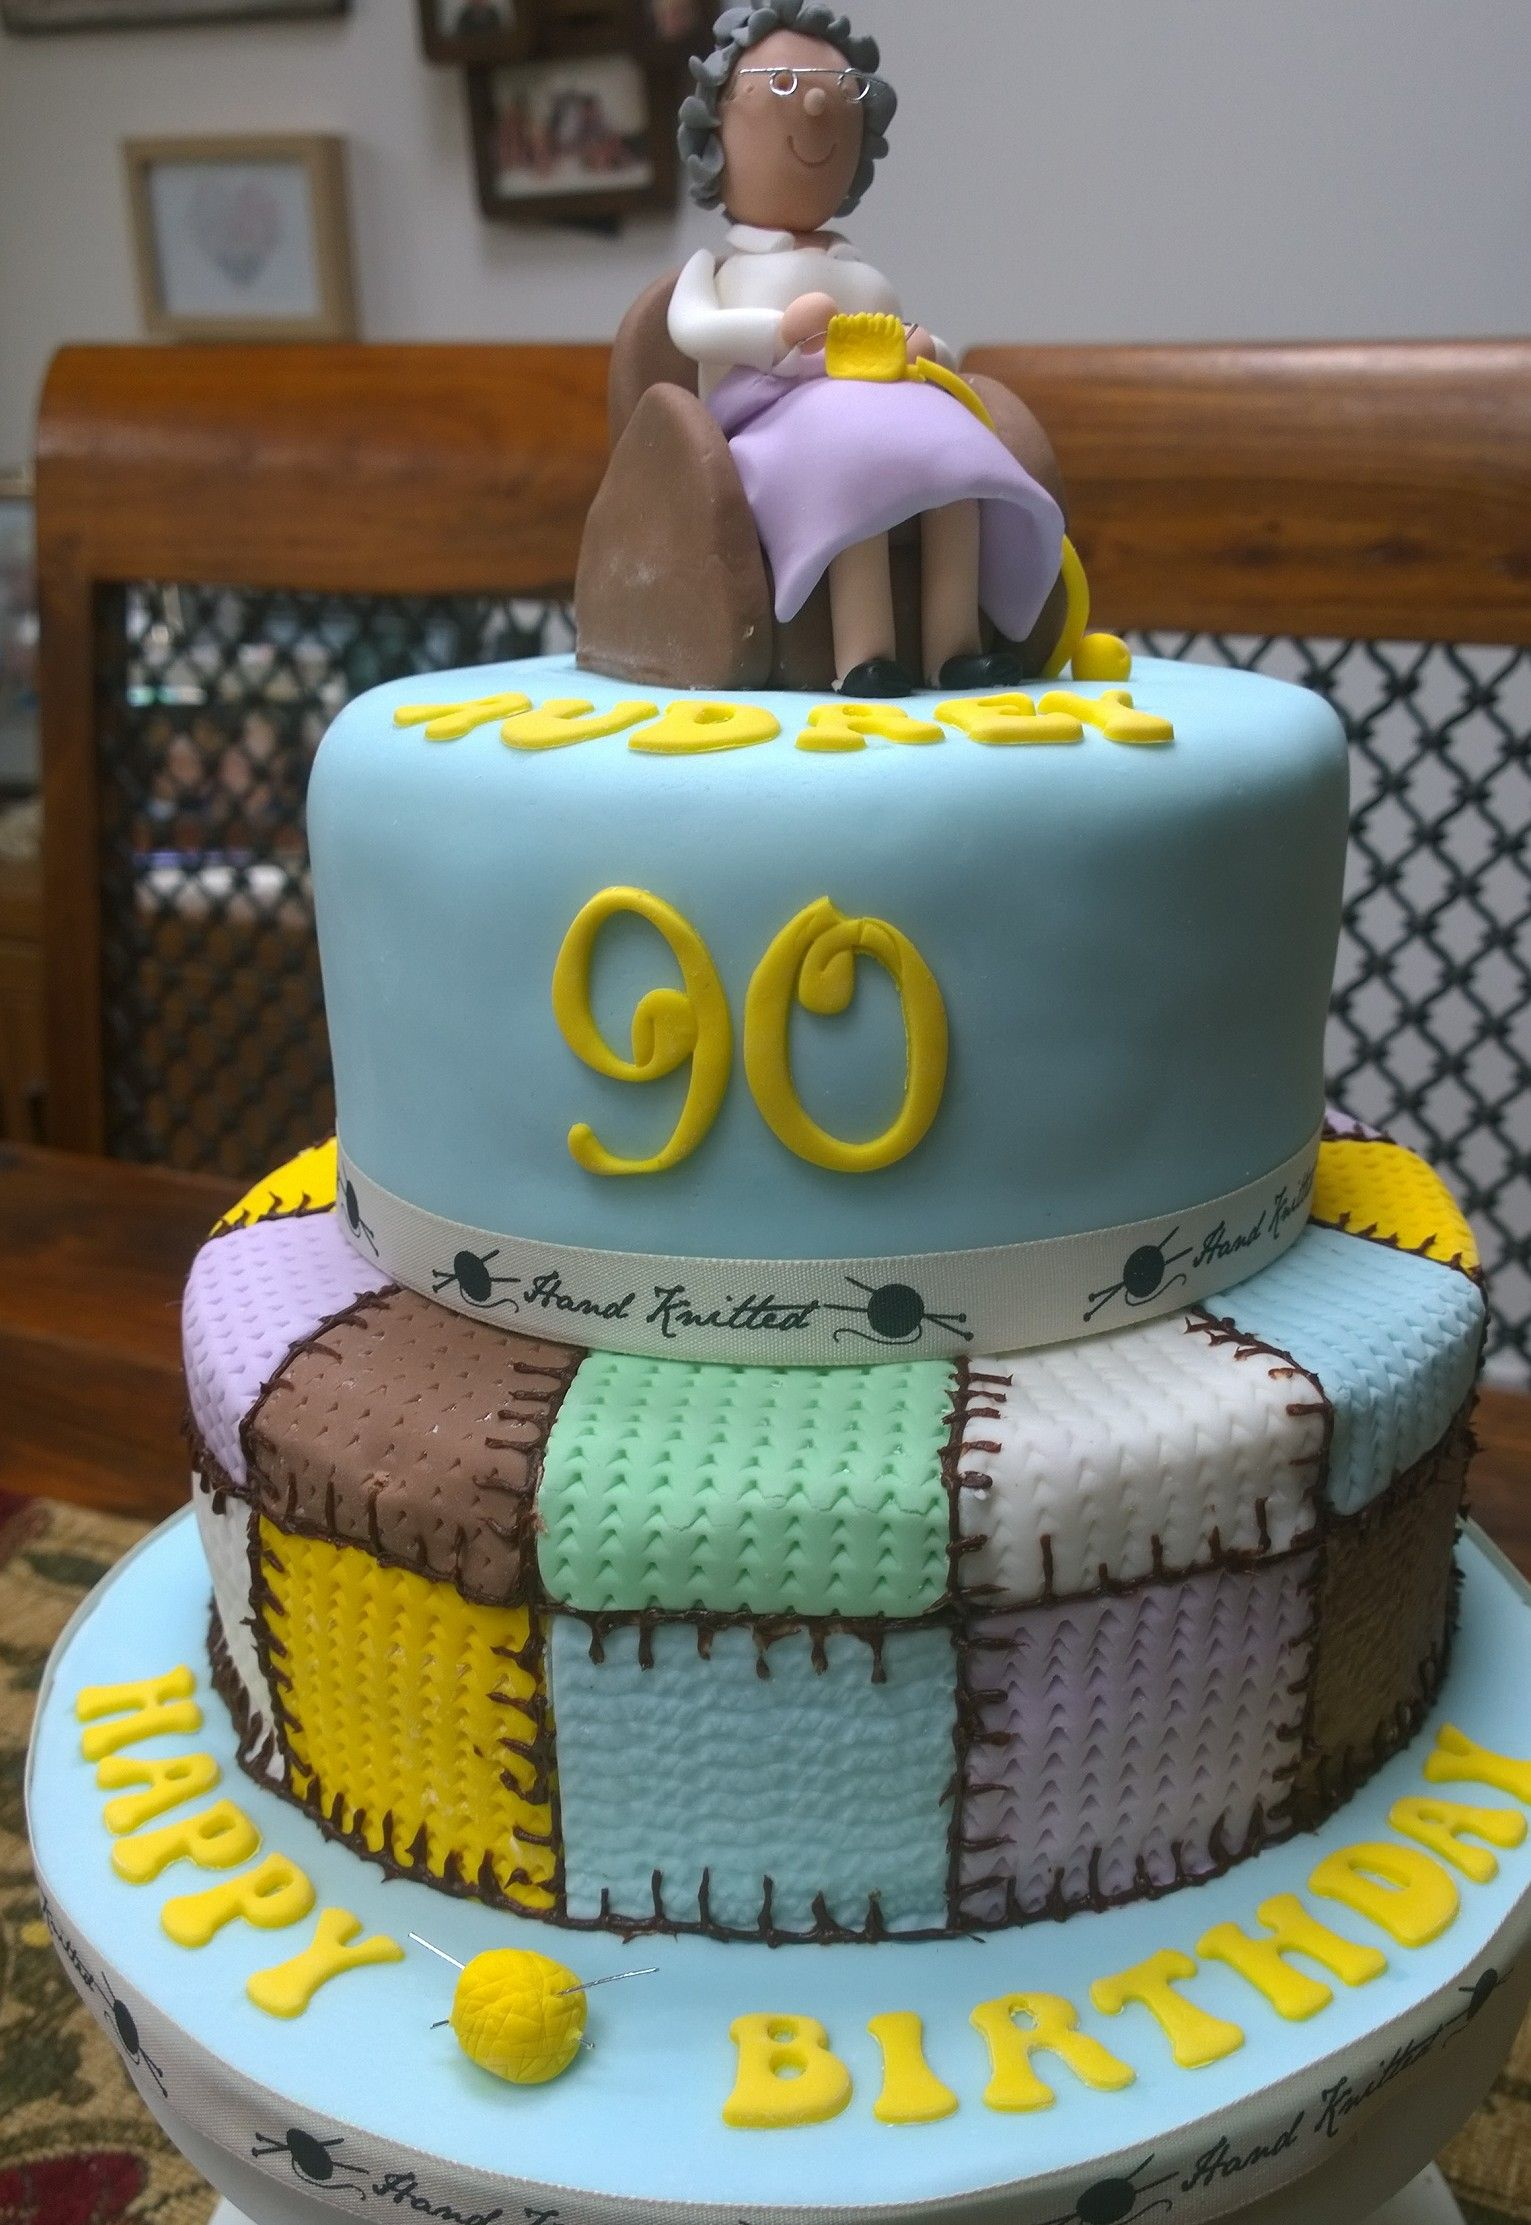 Birthday Cake For A 90 Year Old Knitter